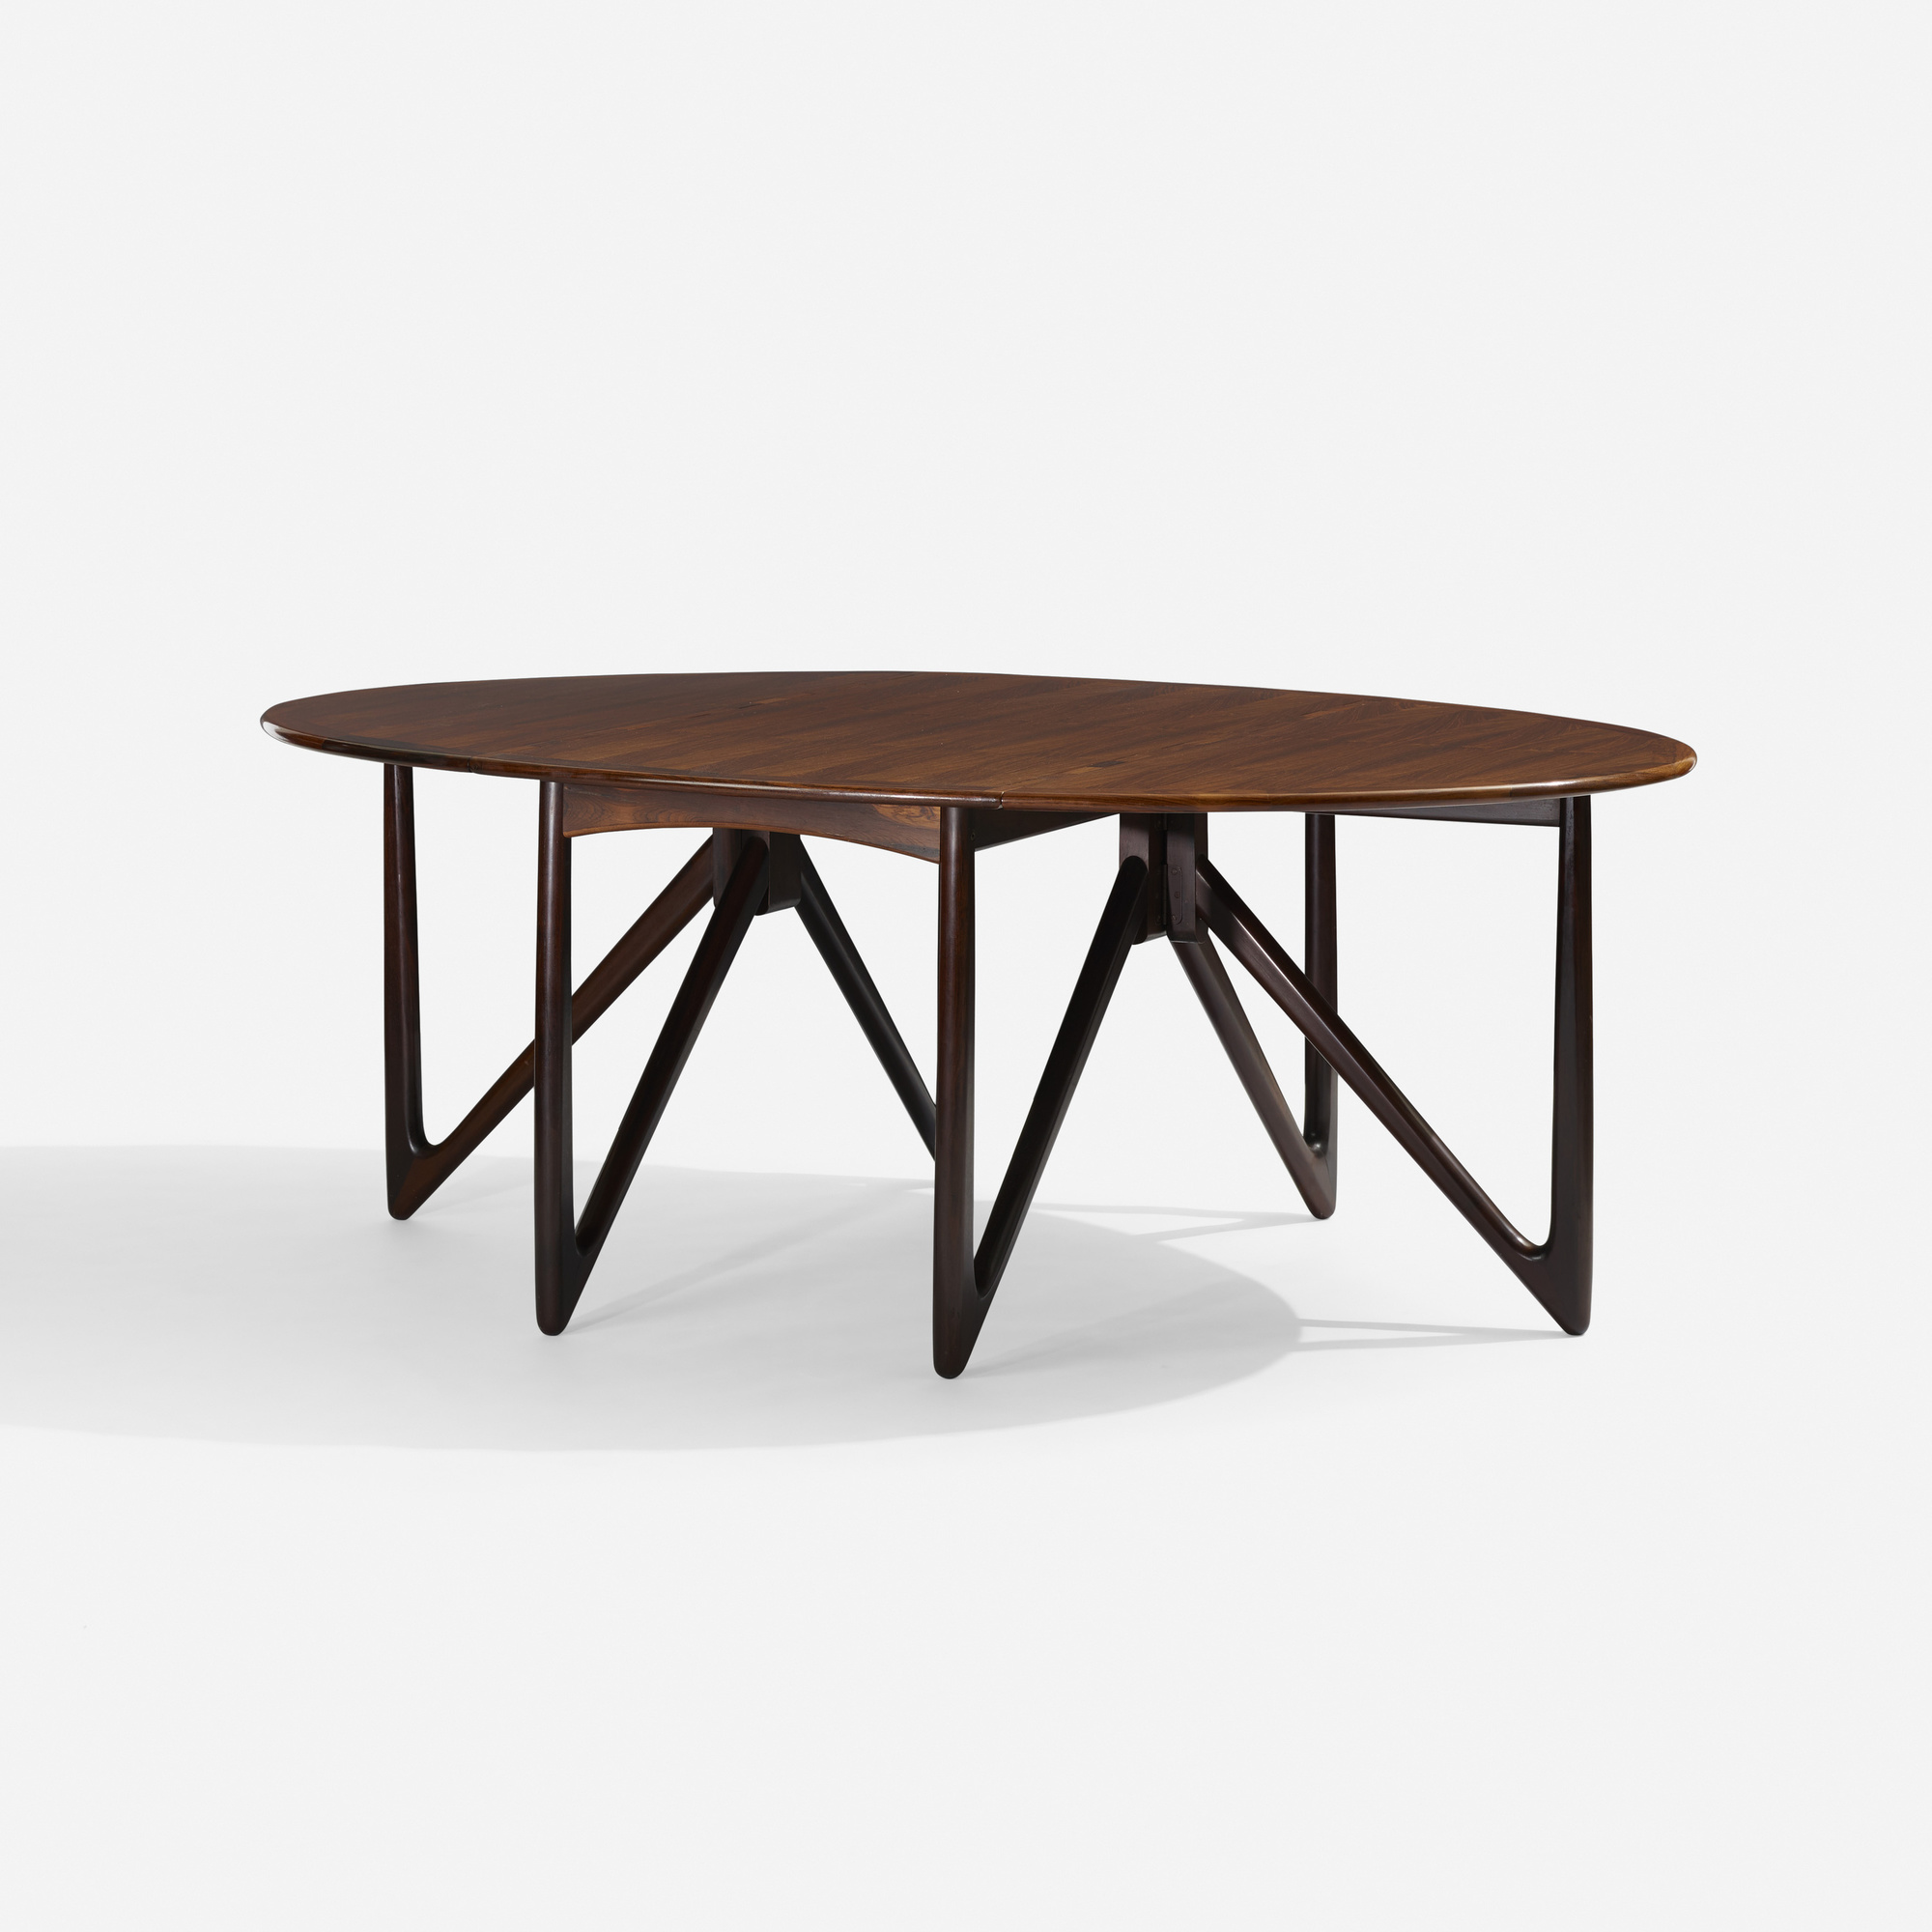 344: Kurt Østervig / drop-leaf dining table (1 of 3)